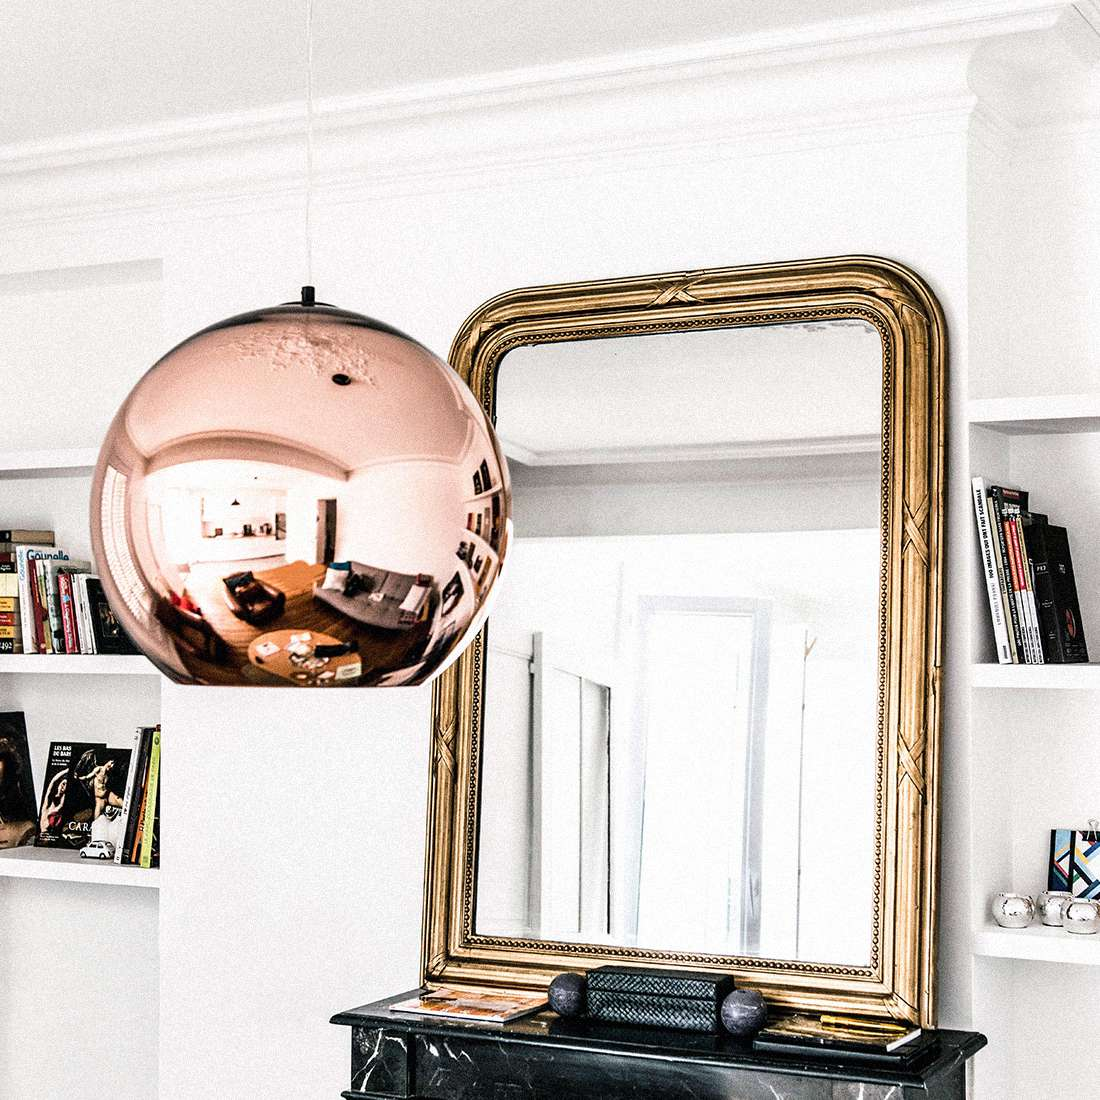 Vintage gold mirror about marble fireplace mantel.